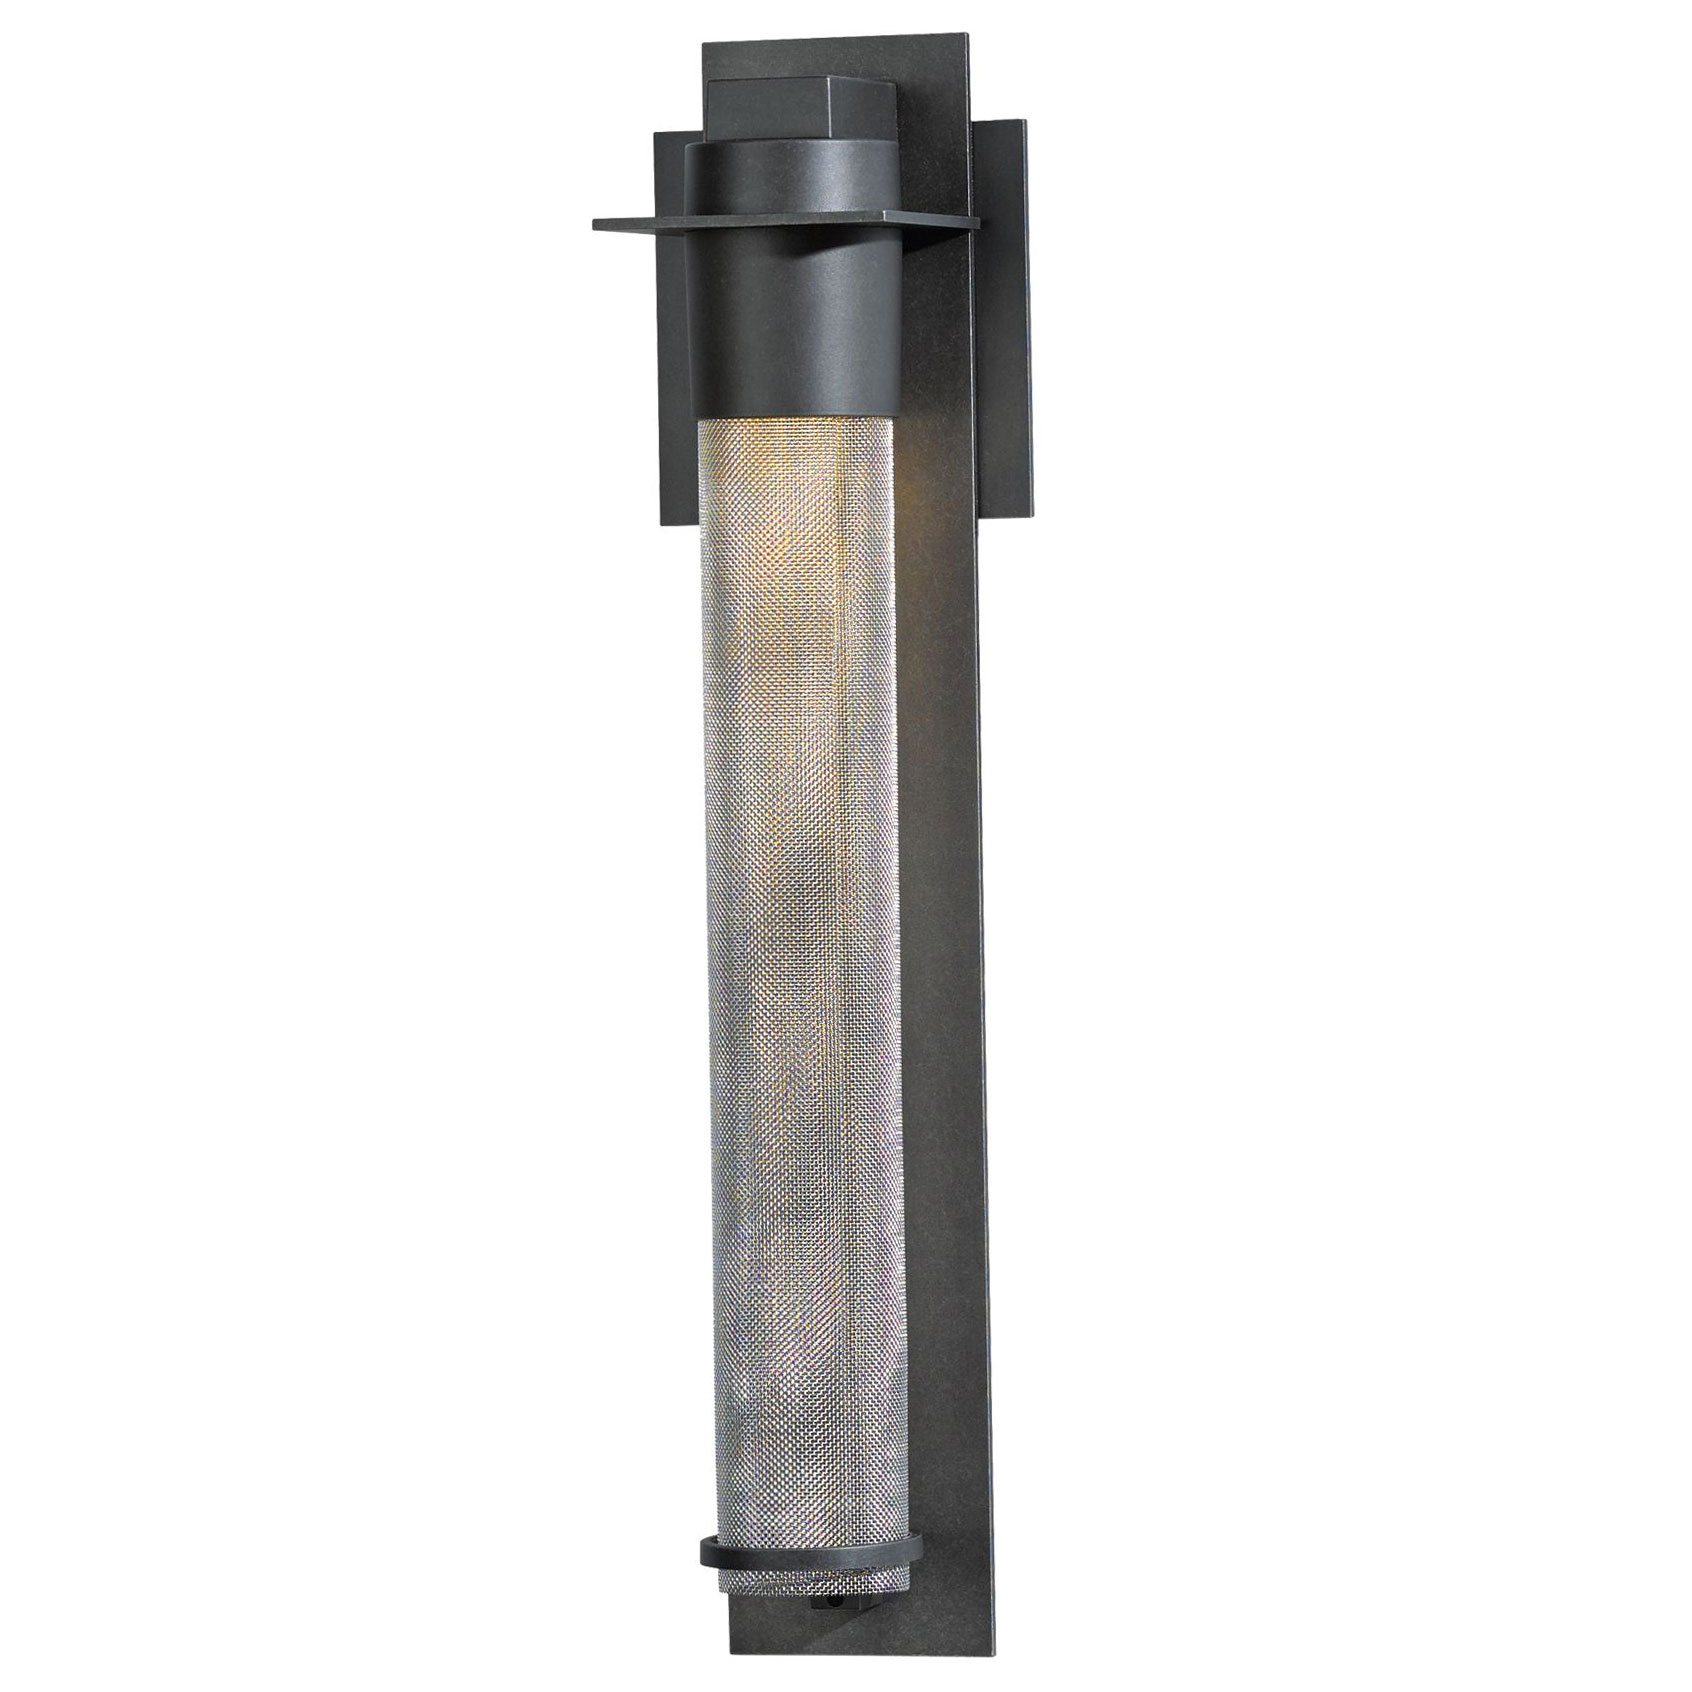 Airis Outdoor Wall Sconce 16396